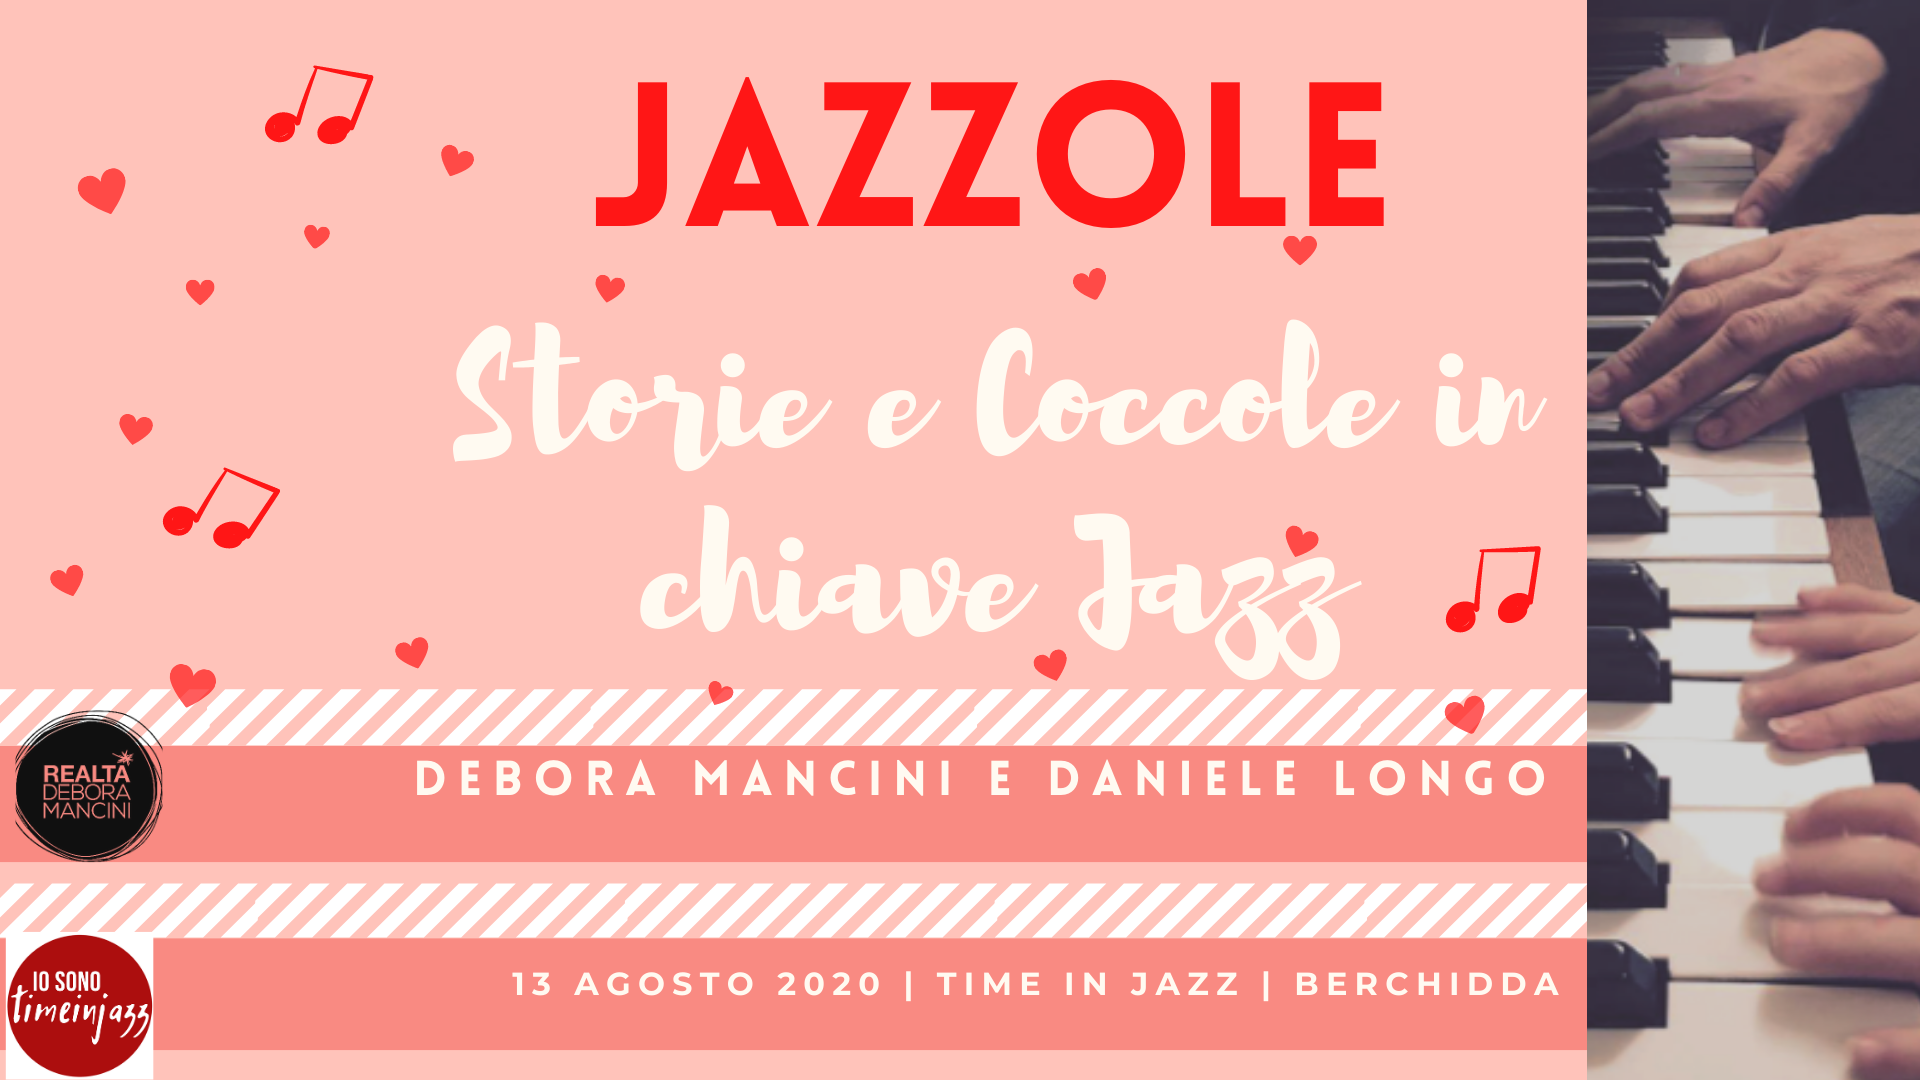 Jazzole-Storie e Coccole in chiave Jazz @Time in Jazz 2020